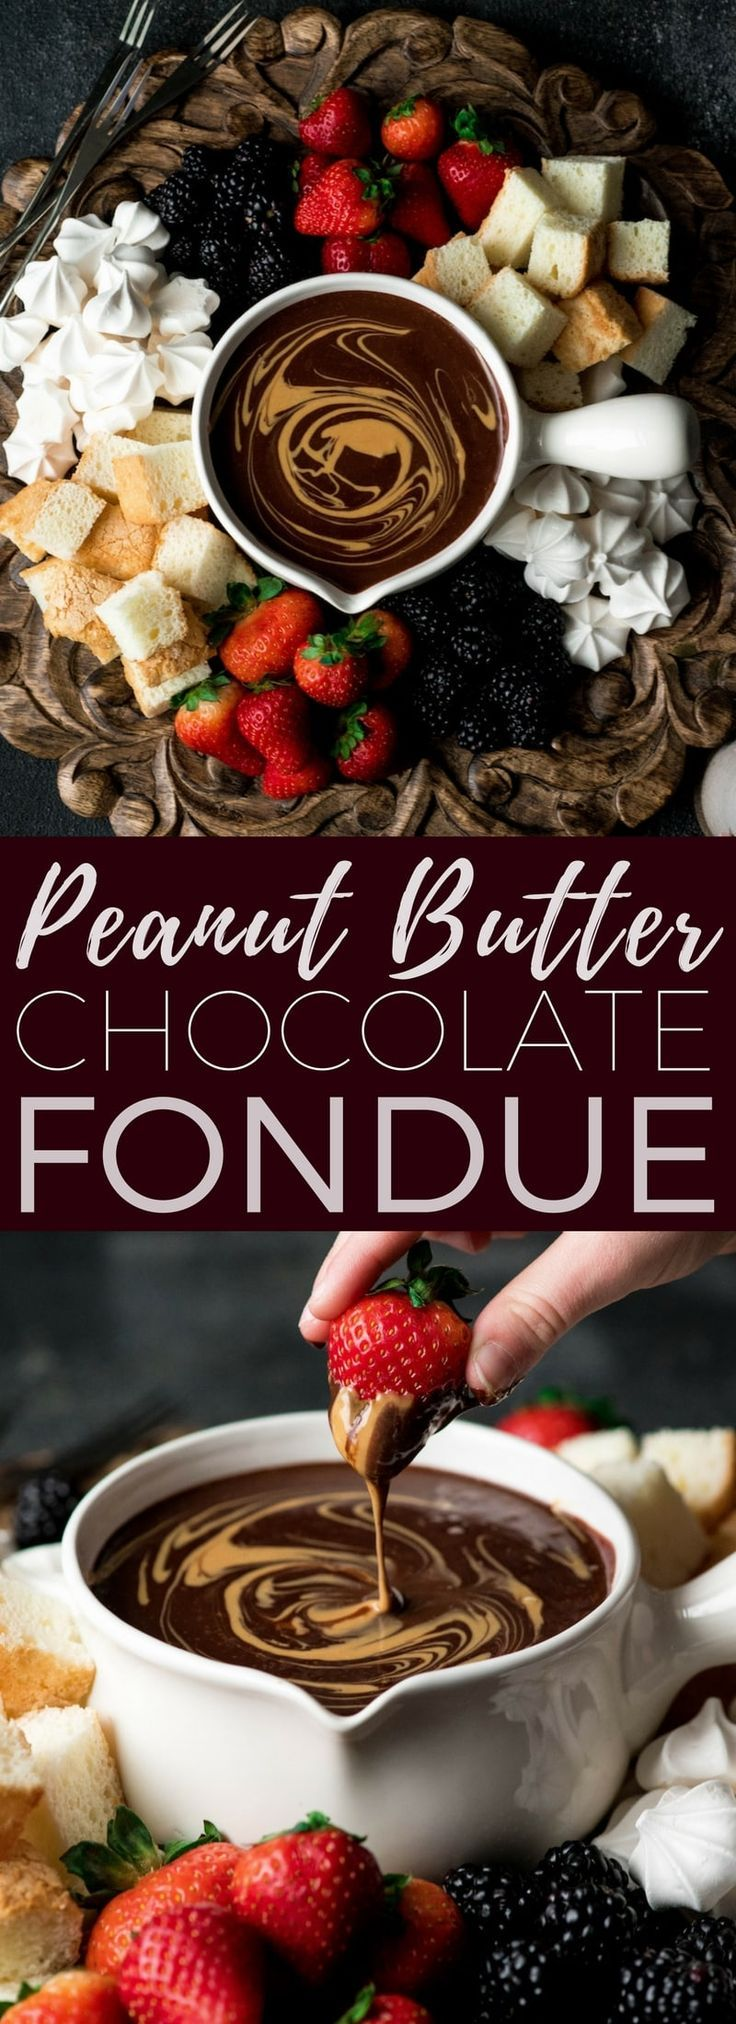 If chocolate & peanut butter is your love language, then you need to make this Dairy-Free Chocolate Peanut Butter Fondue recipe! It's the perfect desert for Valentine's Day or to serve at a Galentine's Day Brunch!